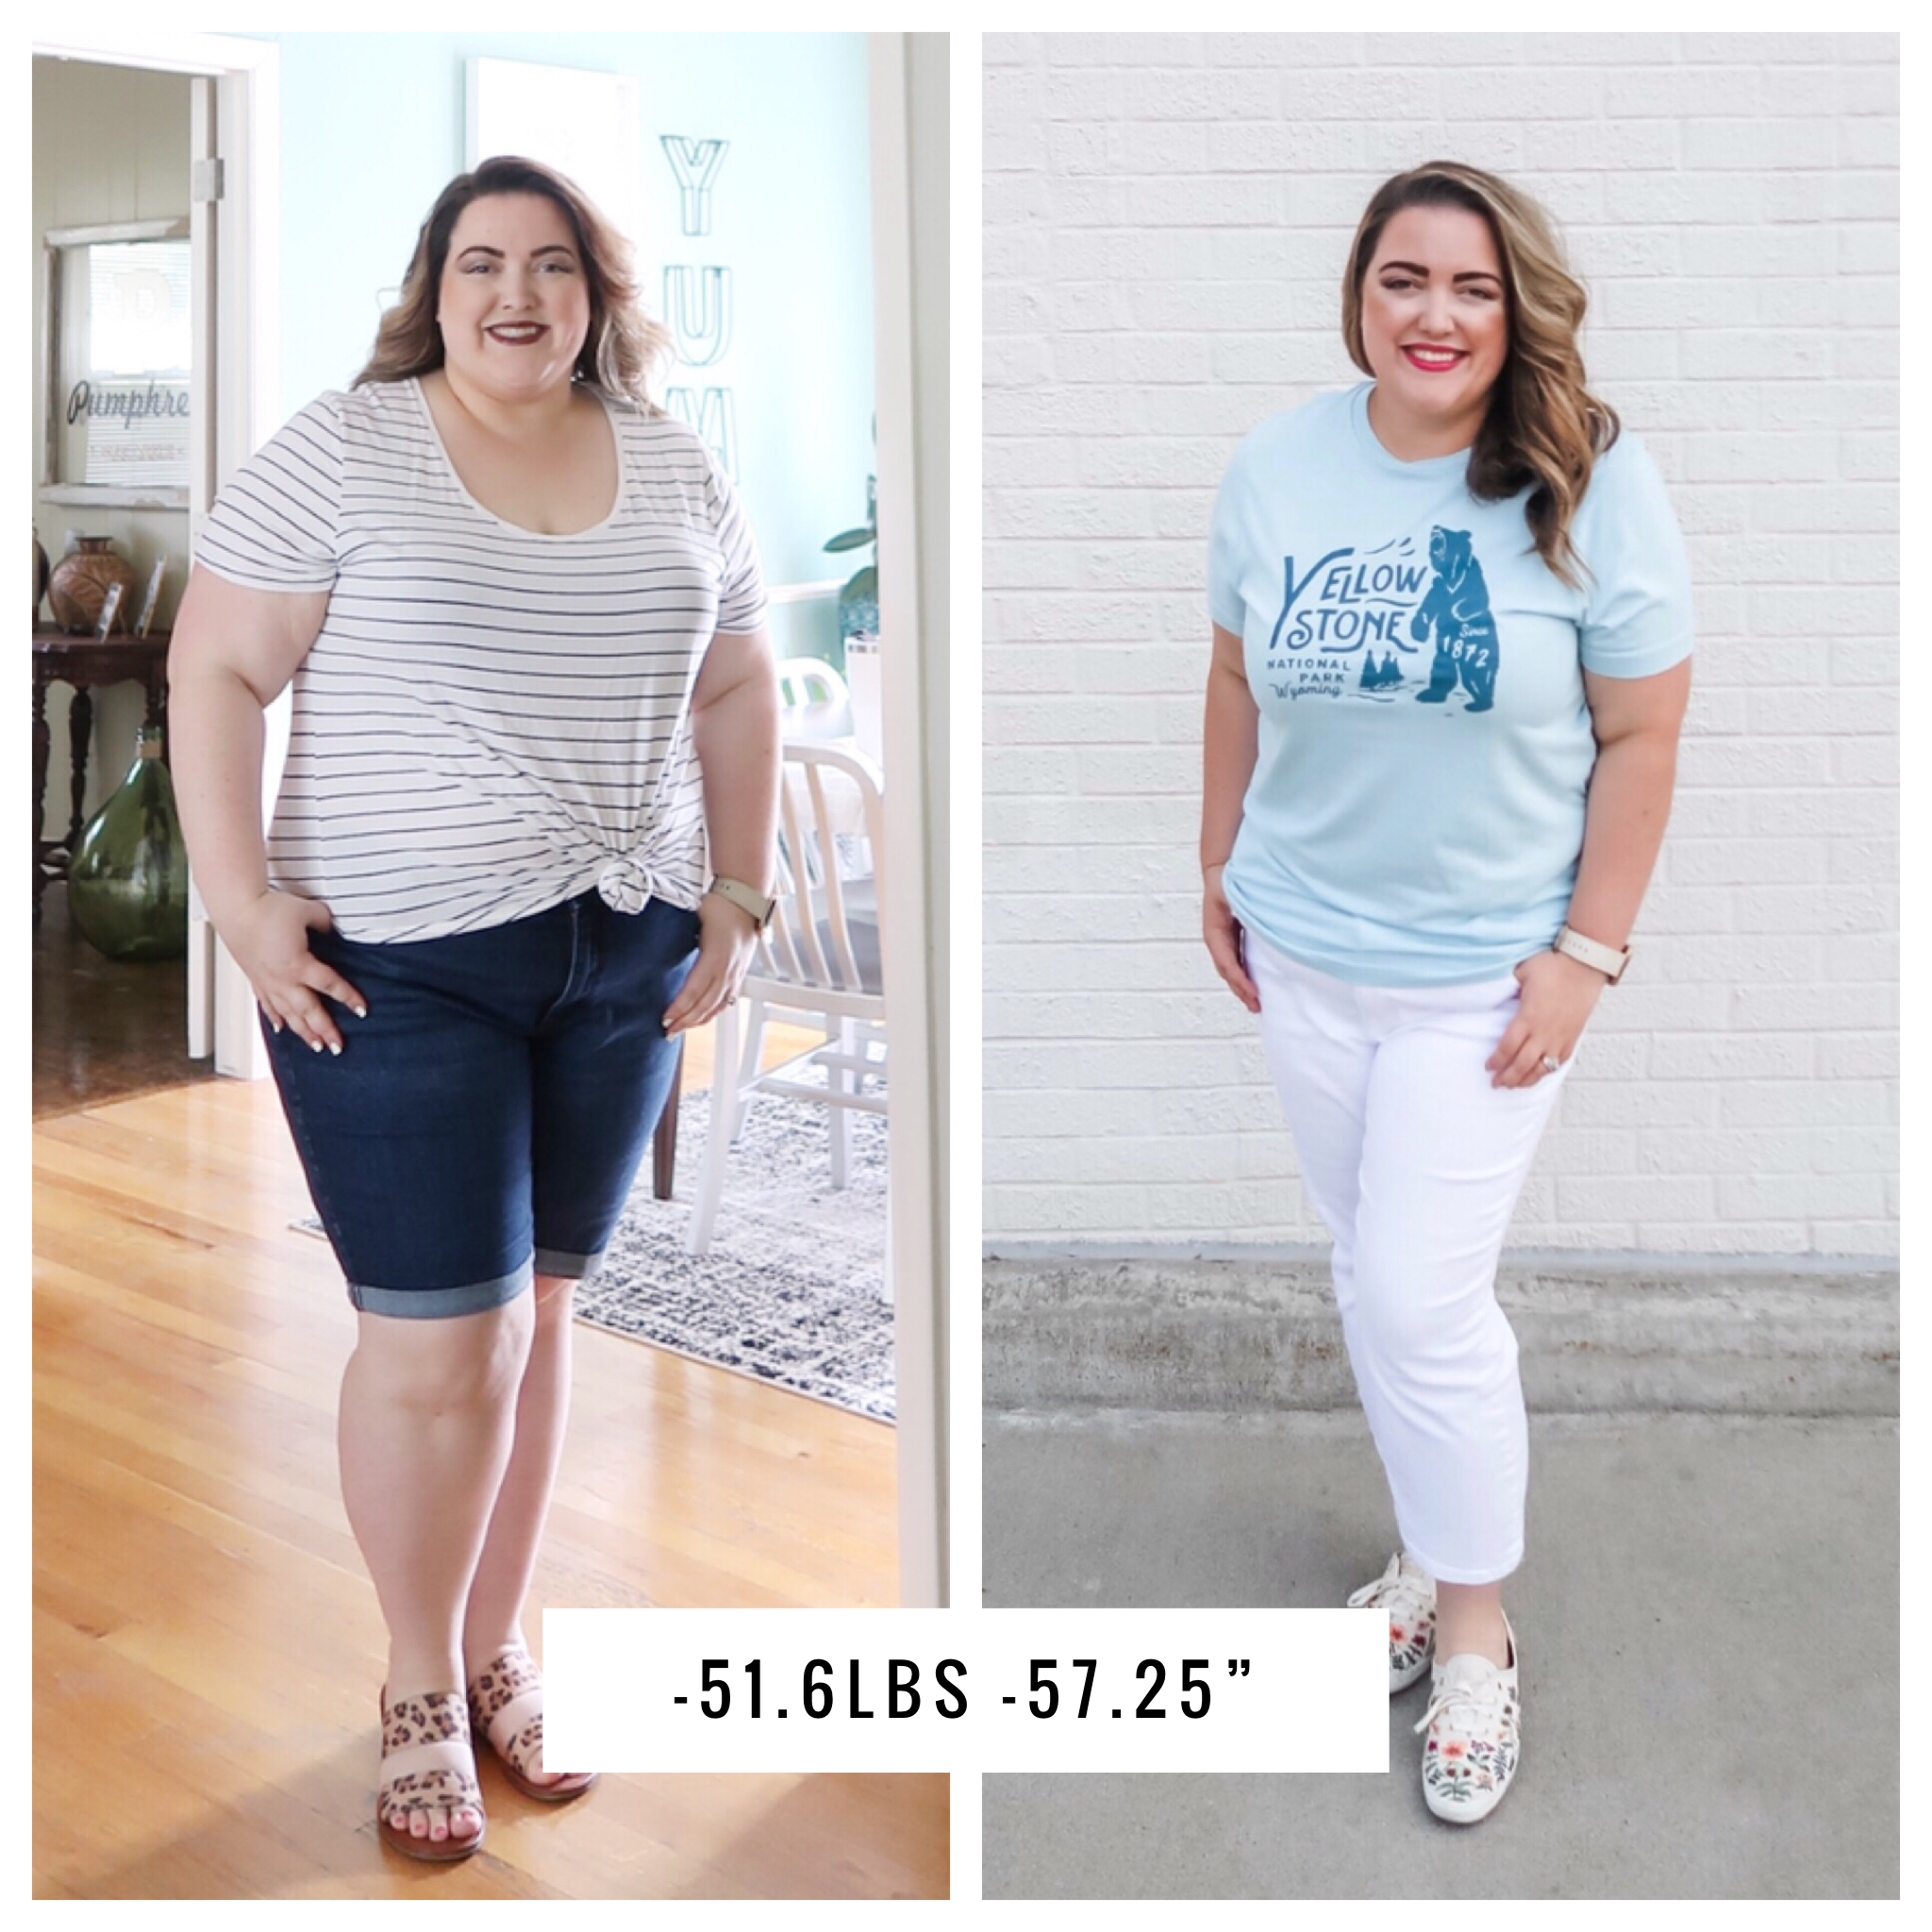 Losing 50 Pounds - Before and After